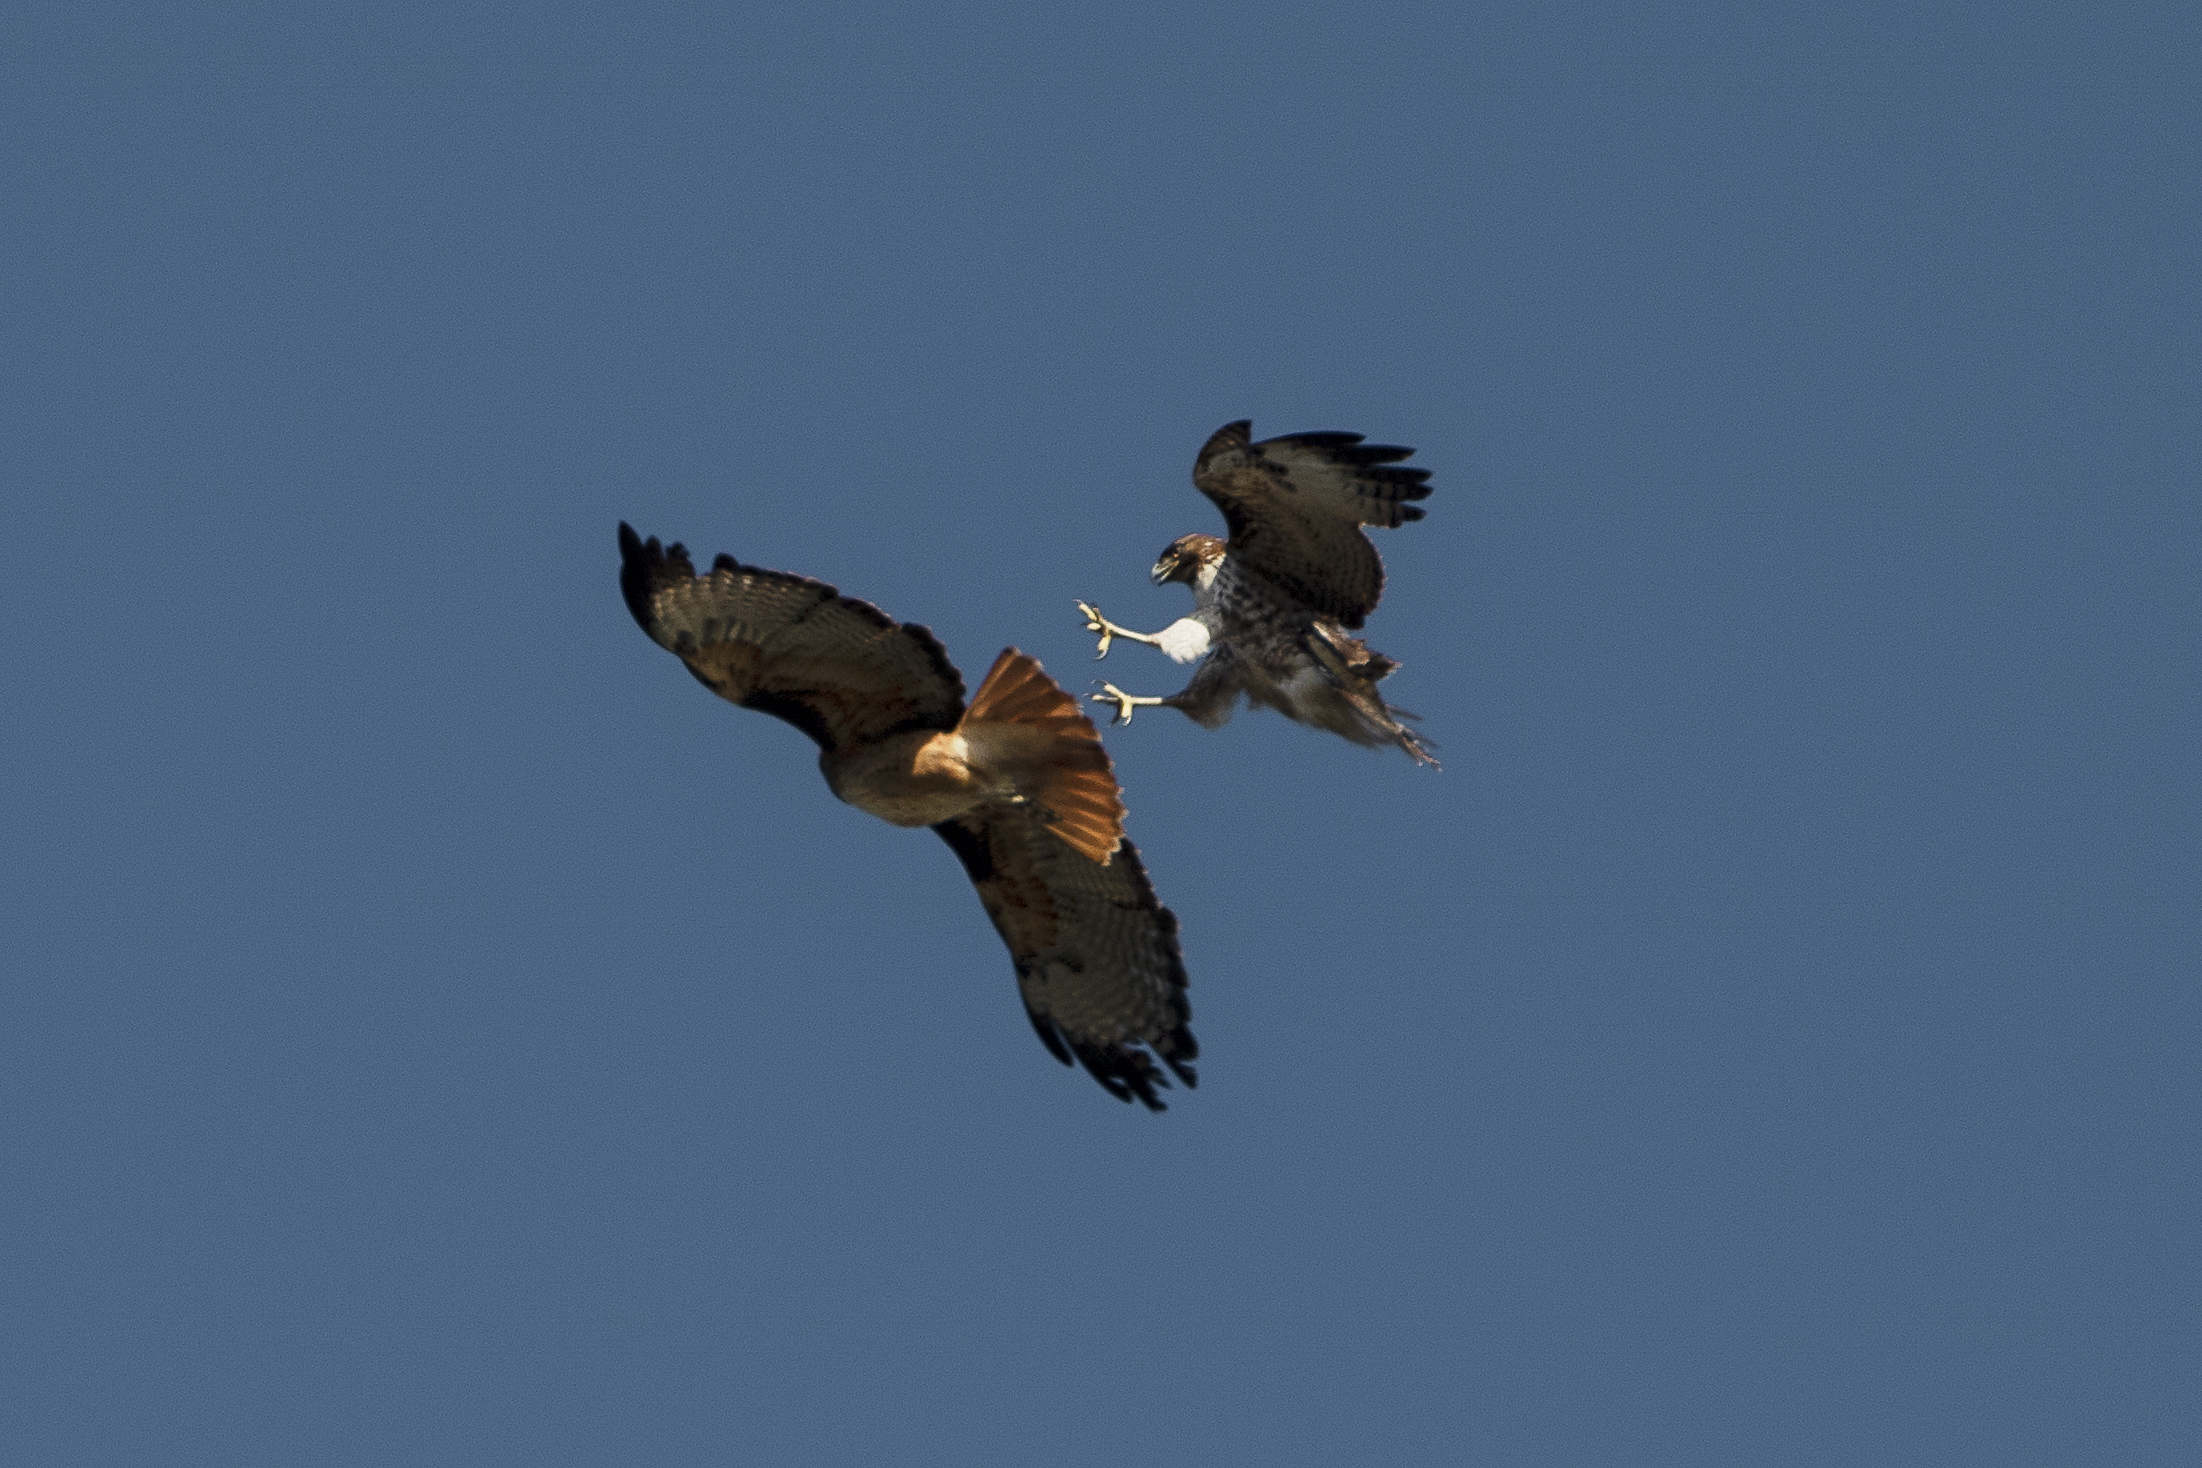 HAWKS FIGHT IN AIR